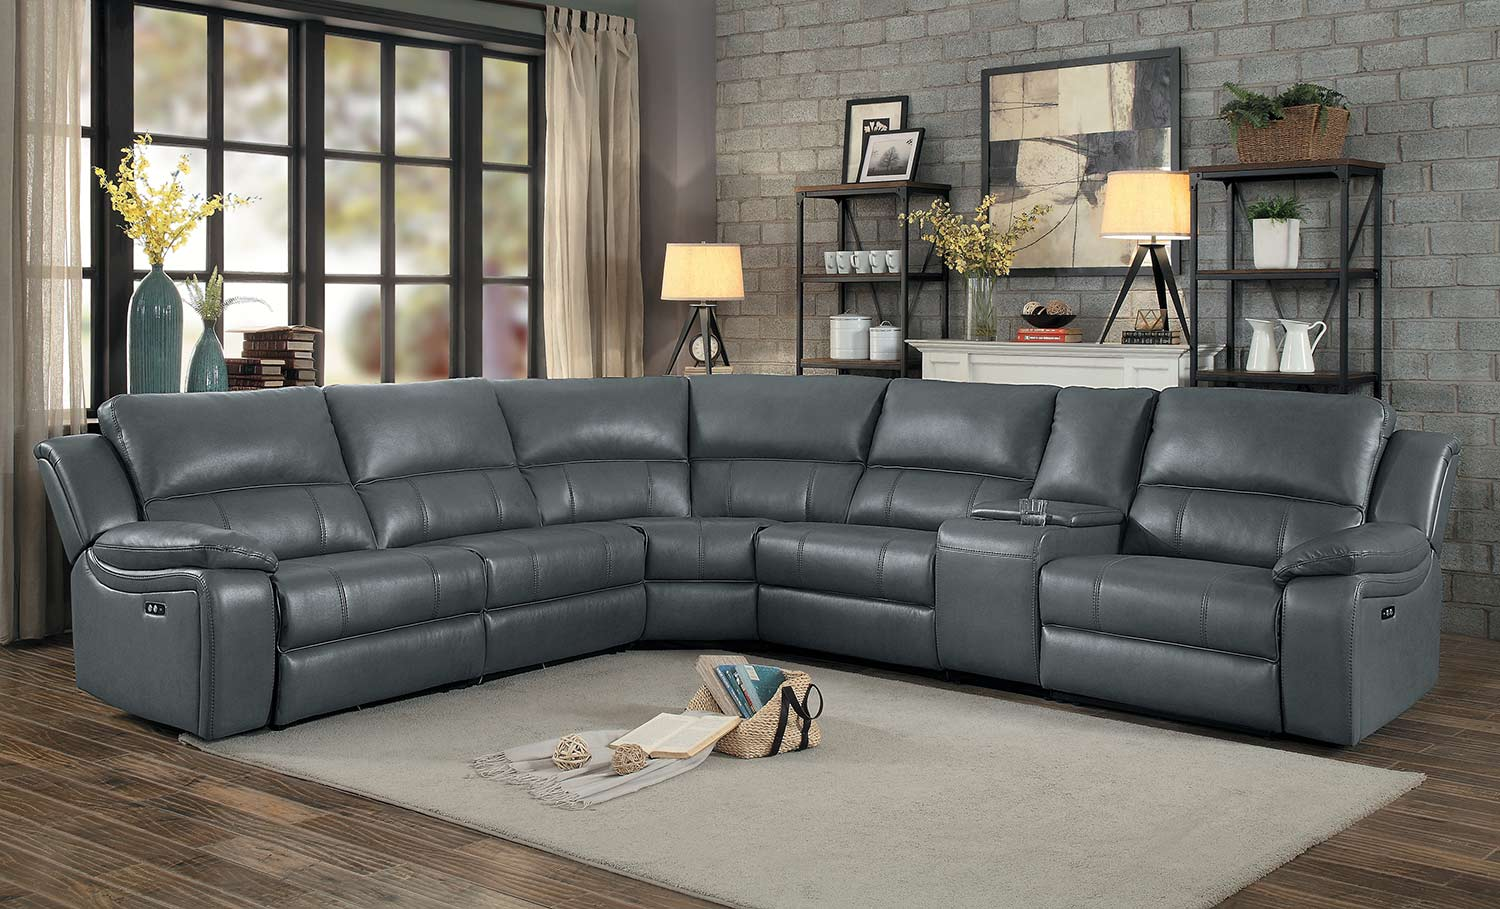 Homelegance Falun Power Reclining Sectional Sofa Set - Gray